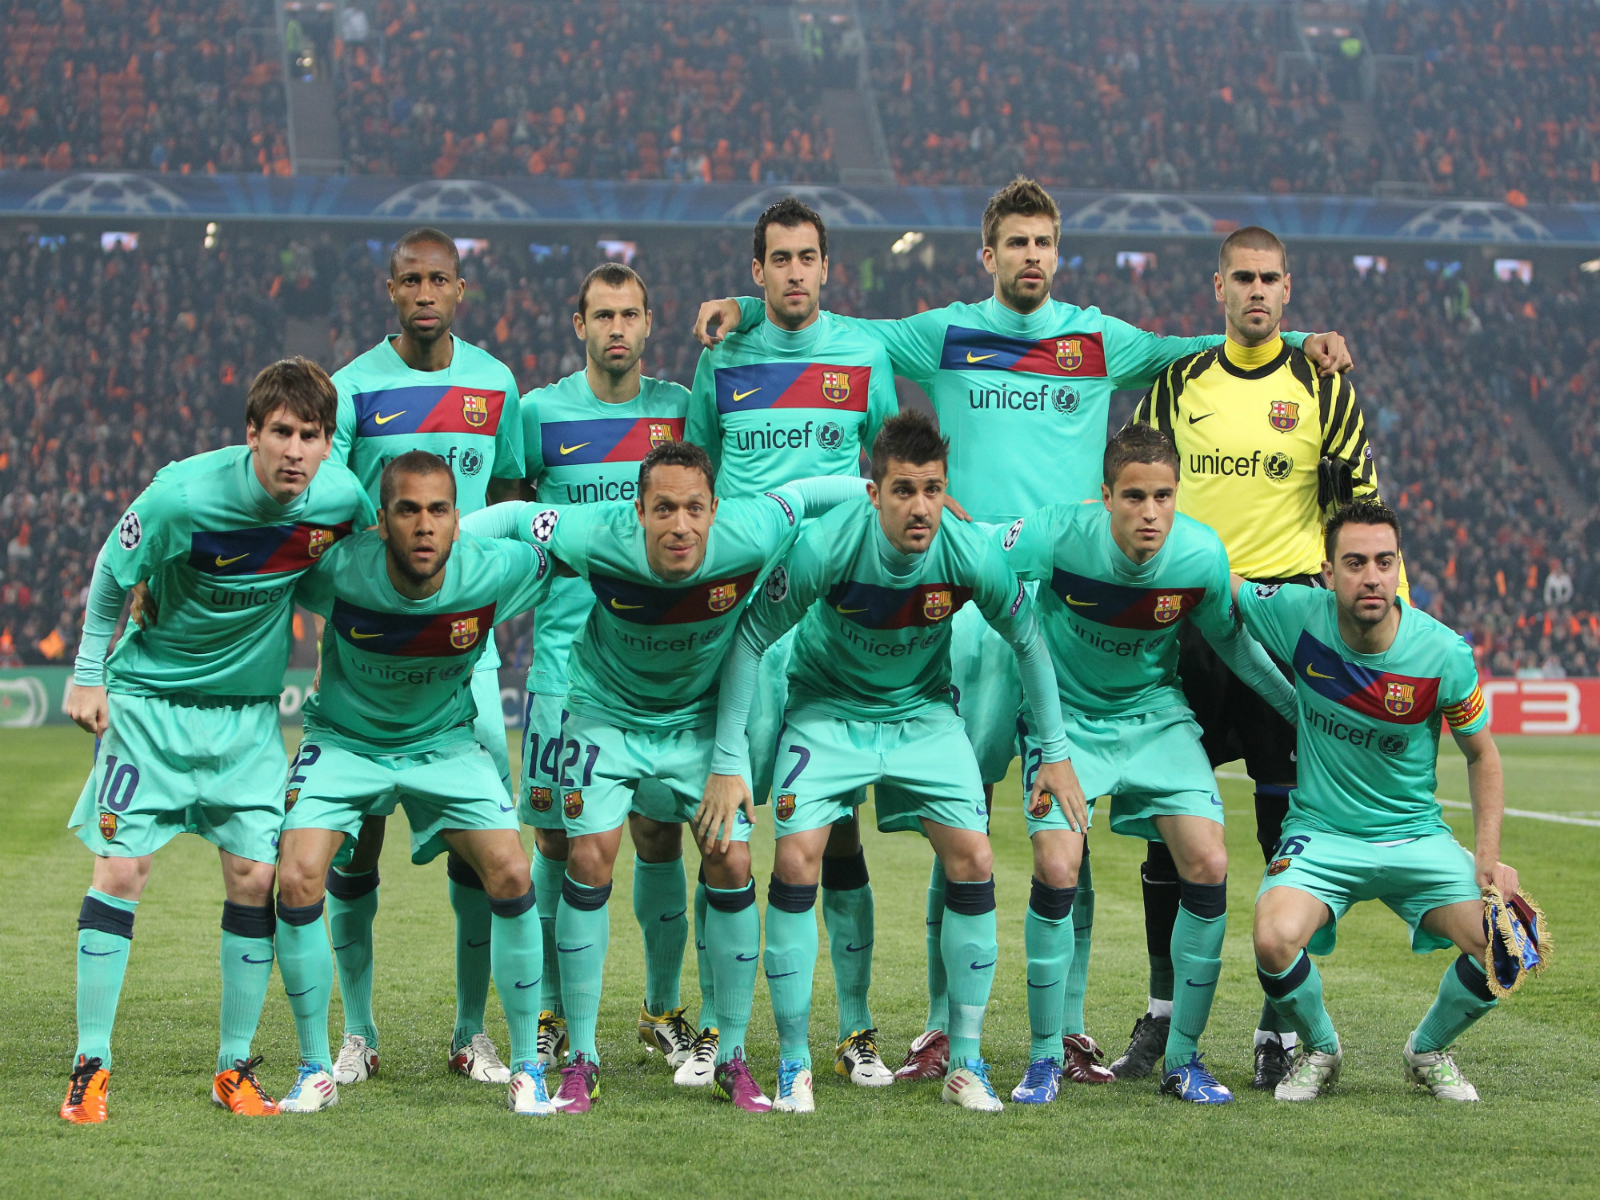 barcelona s football Fc barcelona, also known an barcelona or barca, is a football club based in  barcelona, catalonia, spain and plays in the la liga santander, spain's top.